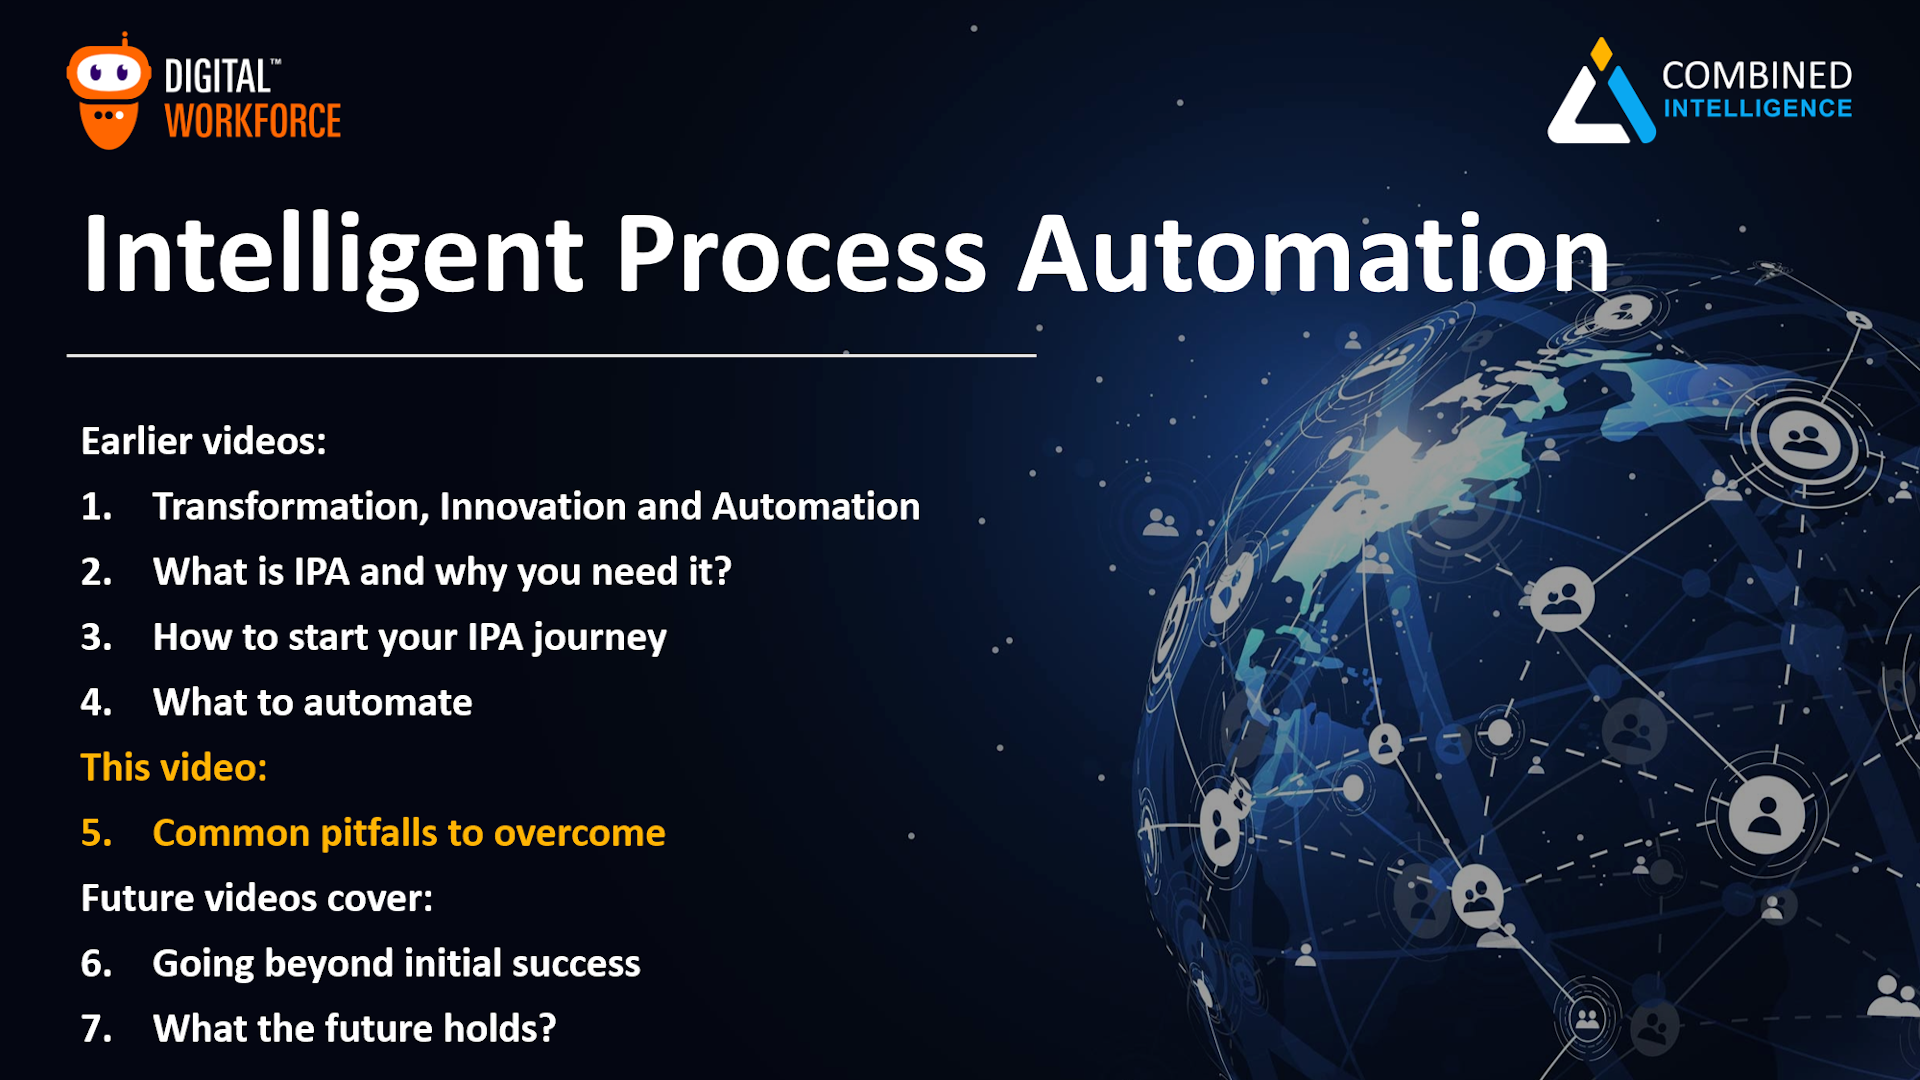 Intelligent Process Automation Video 5 – Common pitfalls to overcome